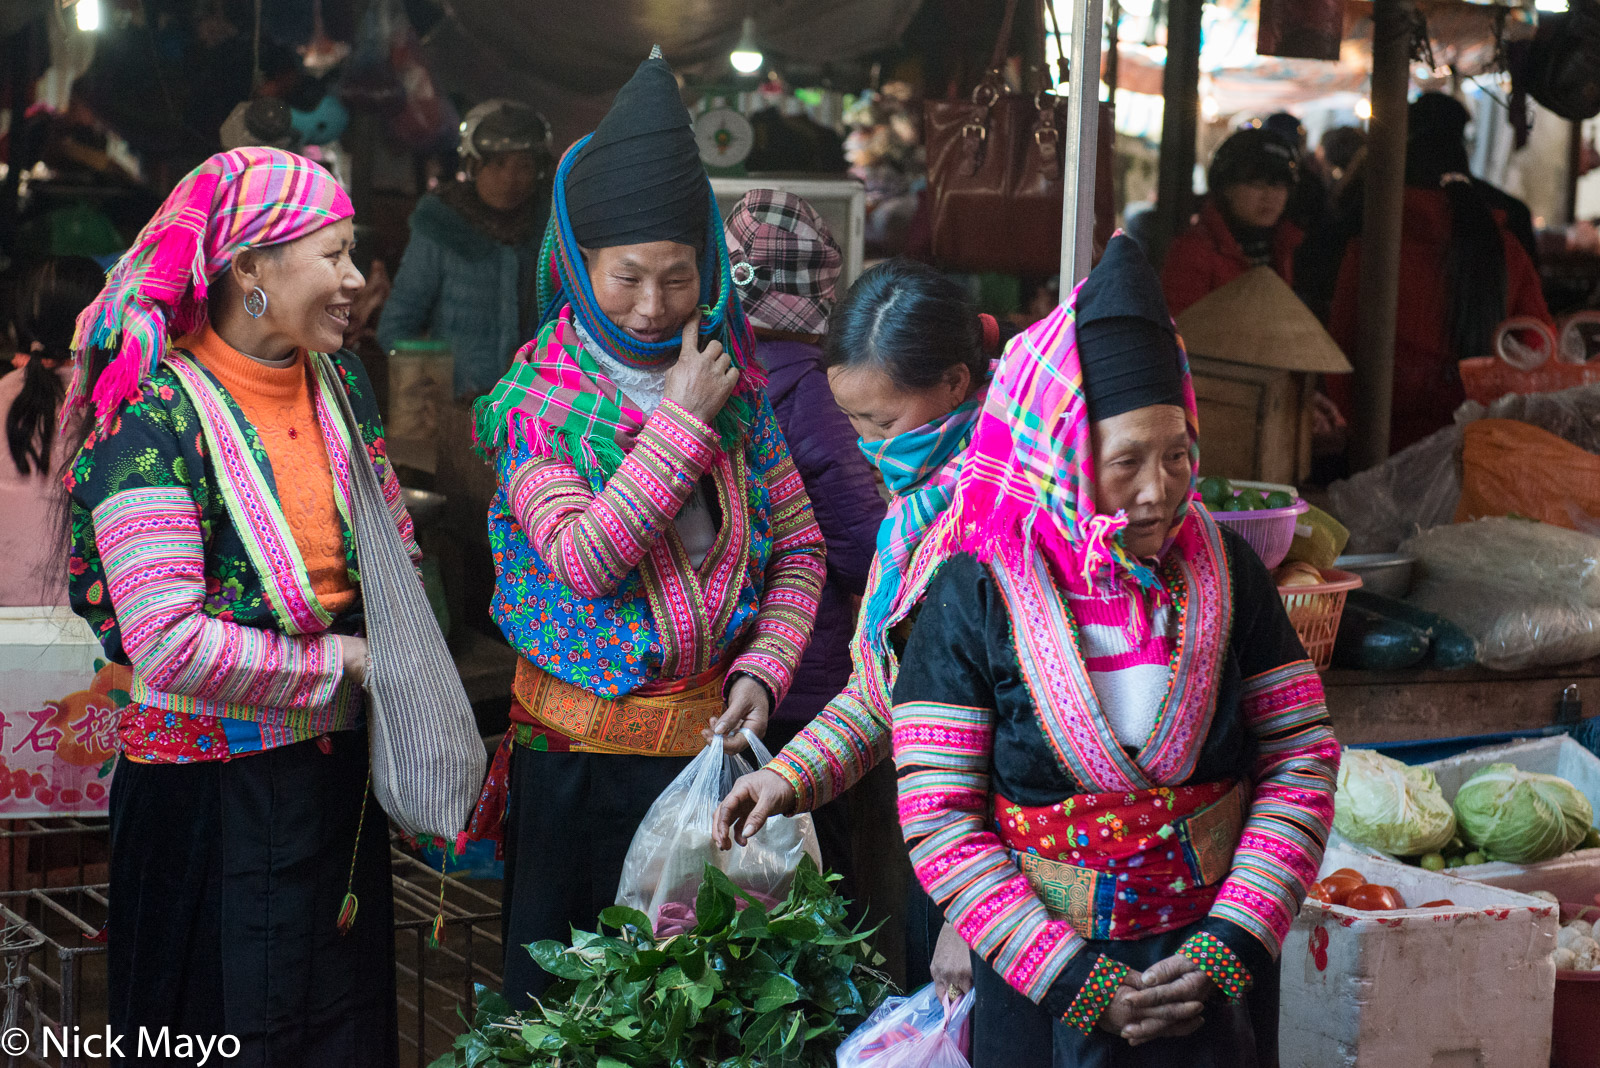 Head Scarf, Lai Chau, Market, Miao, Selling, Sleeve, Turban, Vietnam, photo